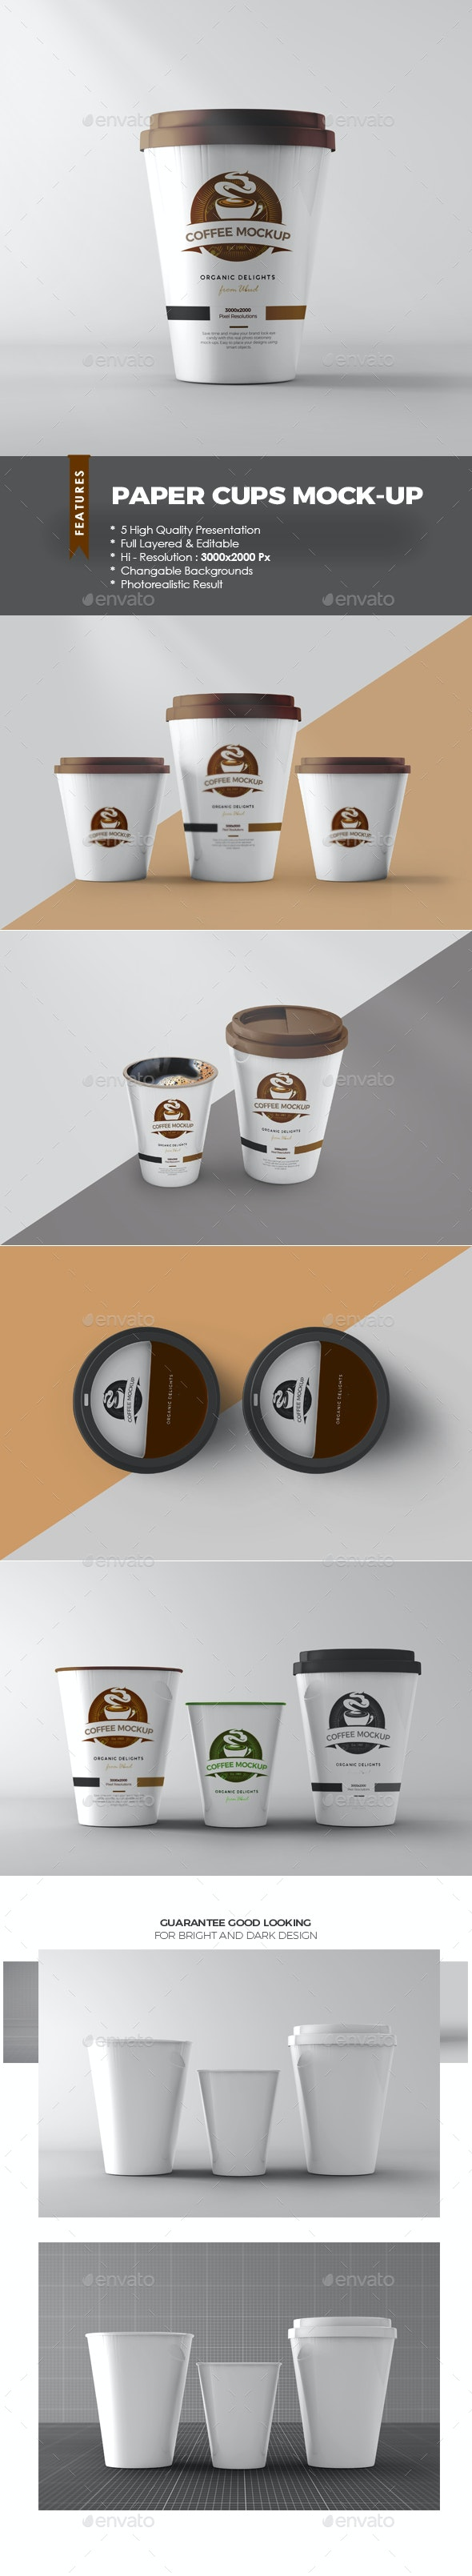 Paper Coffee Cups Mock-up - Food and Drink Packaging